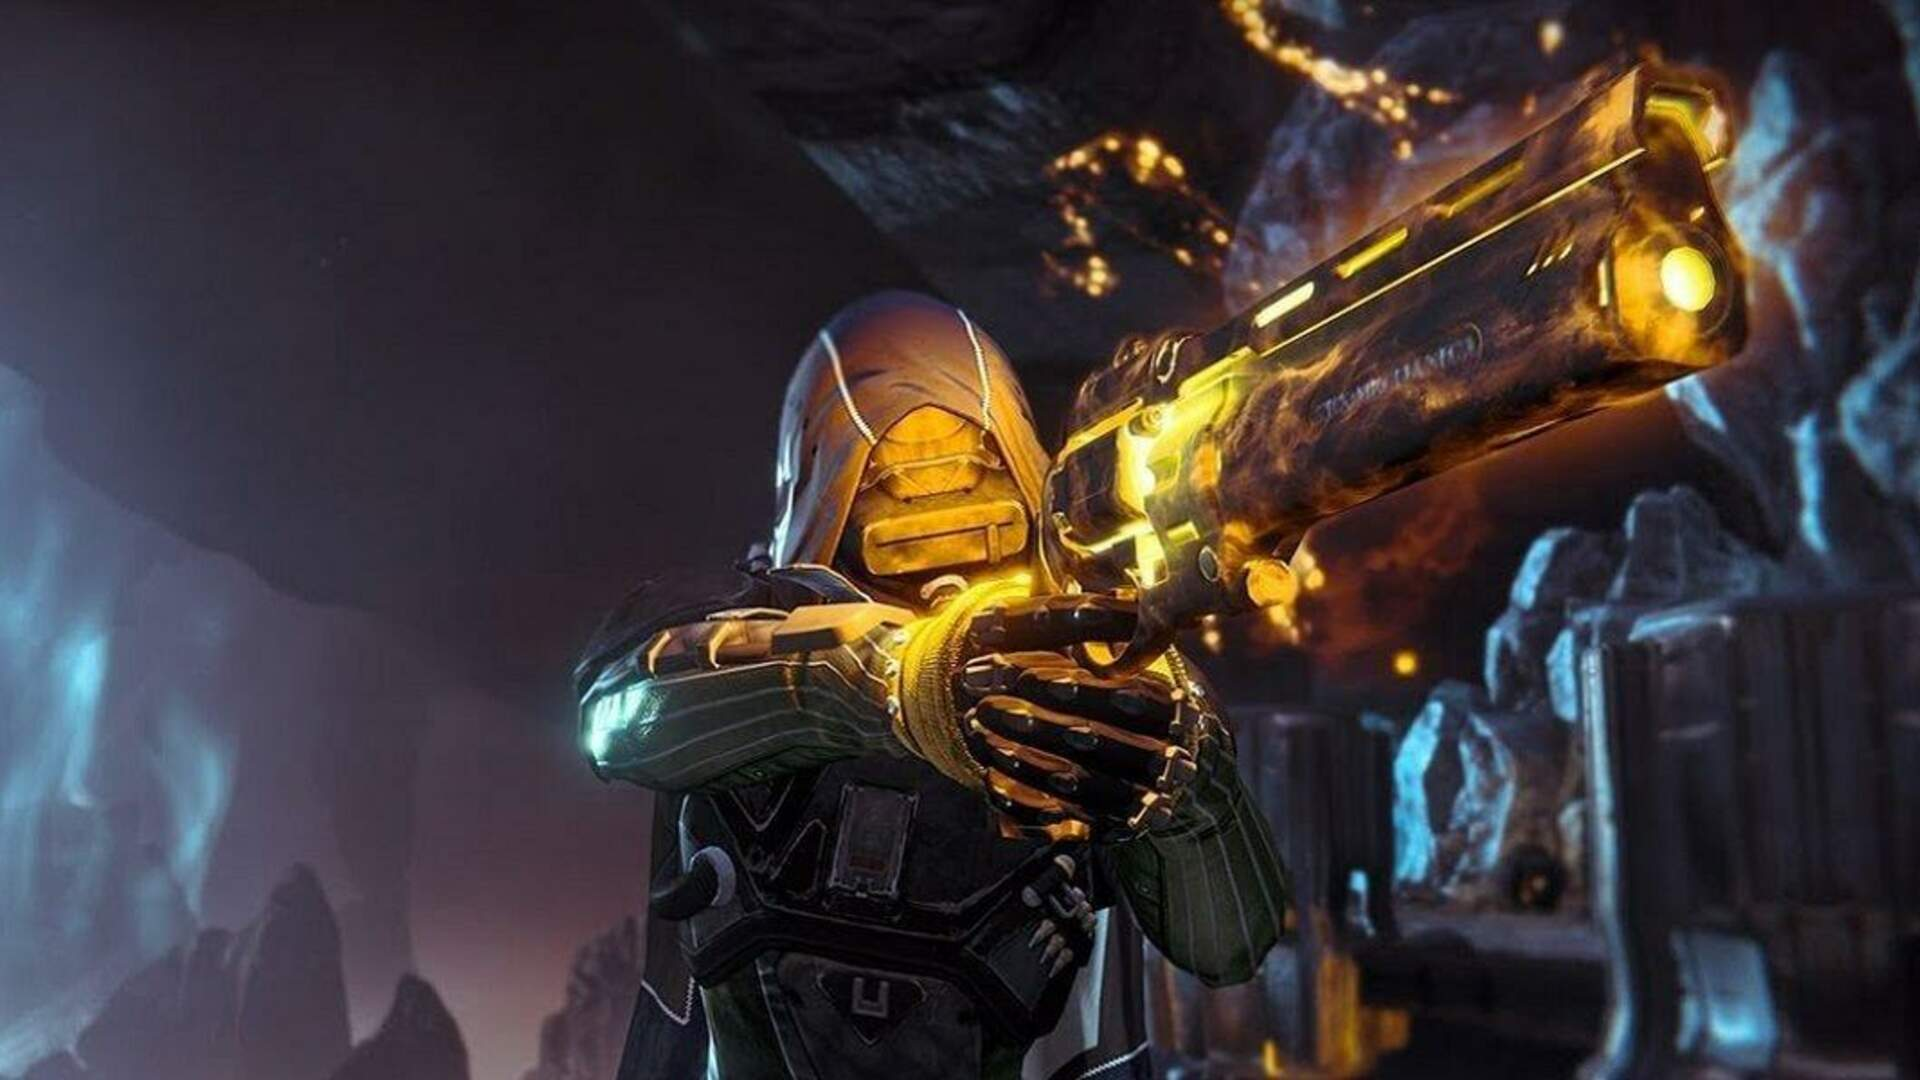 Destiny 2 Class Guide - Hunter, Titan, Warlock Subclasses Guide, Which Class Should you Play as?